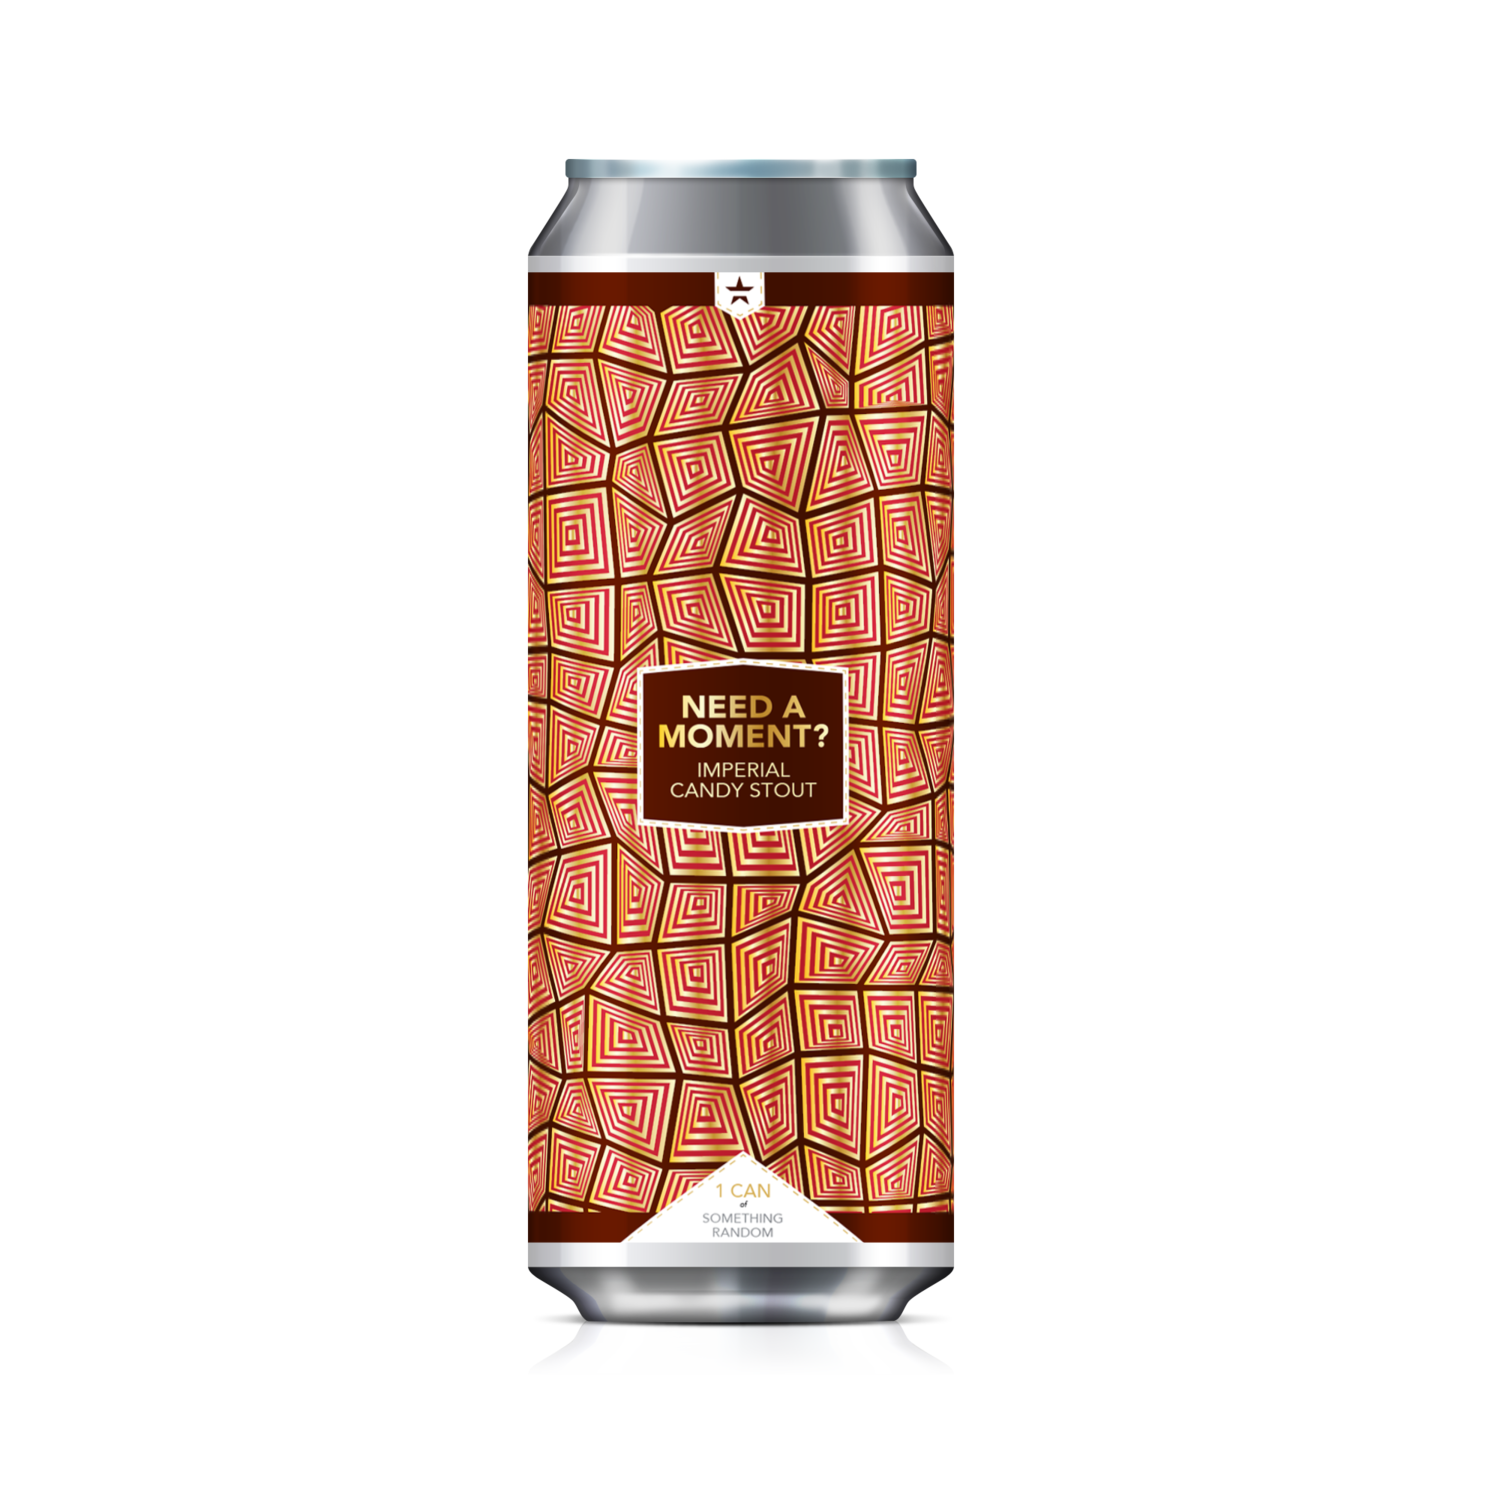 Need A Moment? 12-Pack (19.2oz cans) *Shipping for CA Only